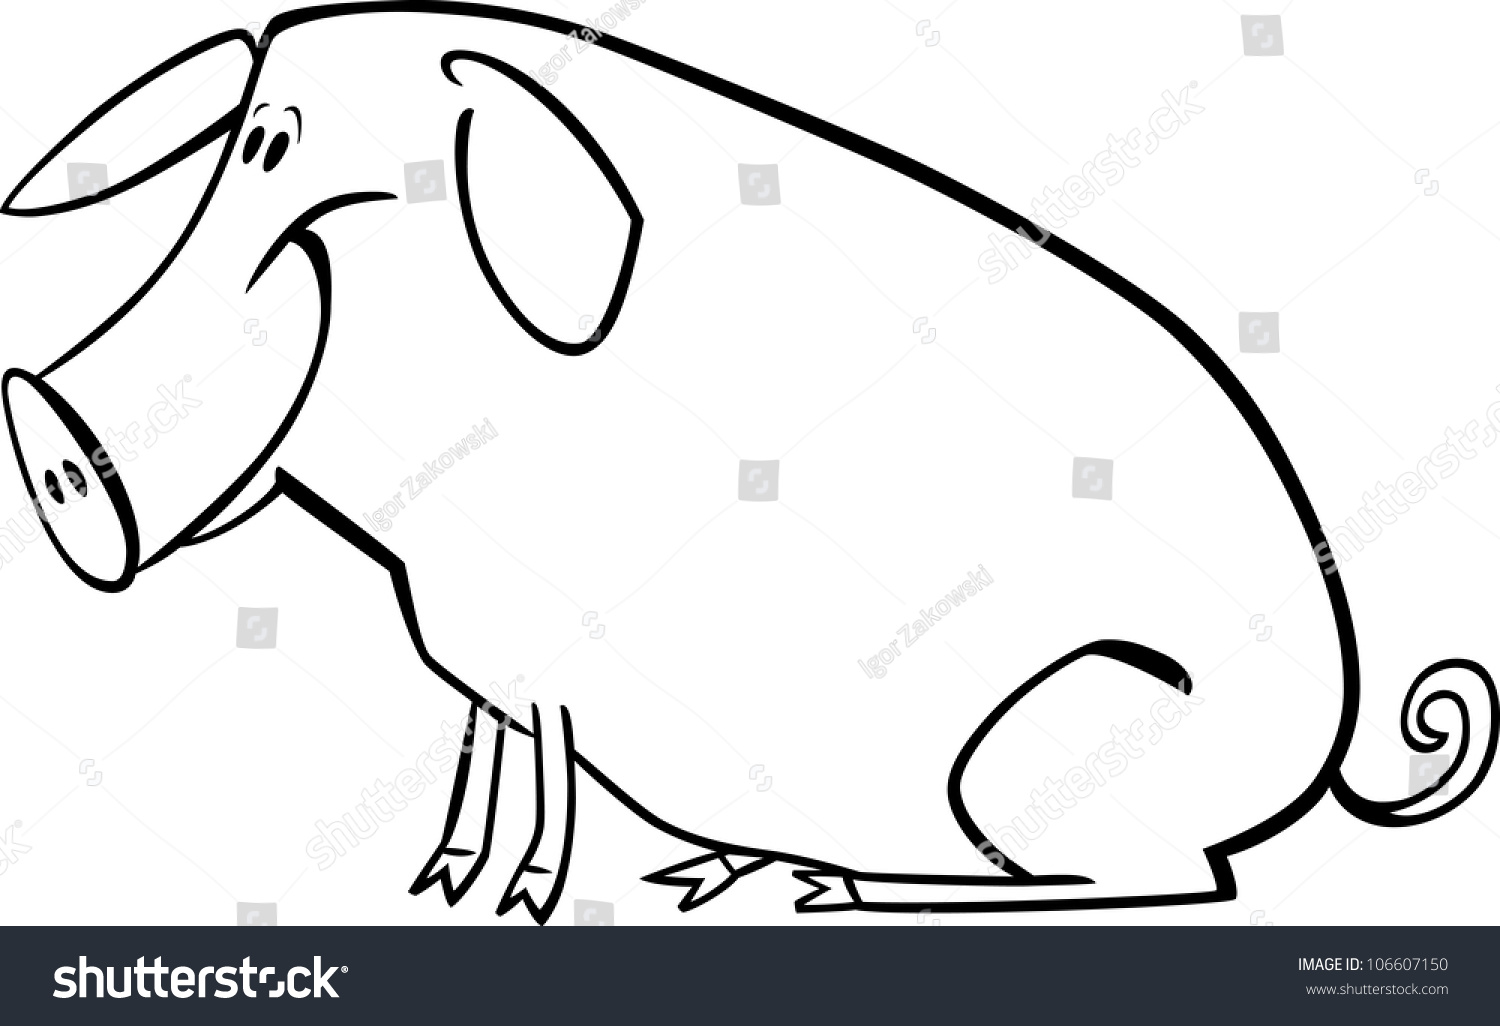 Coloring Page Illustration Funny Farm Pig Stock Illustration ...